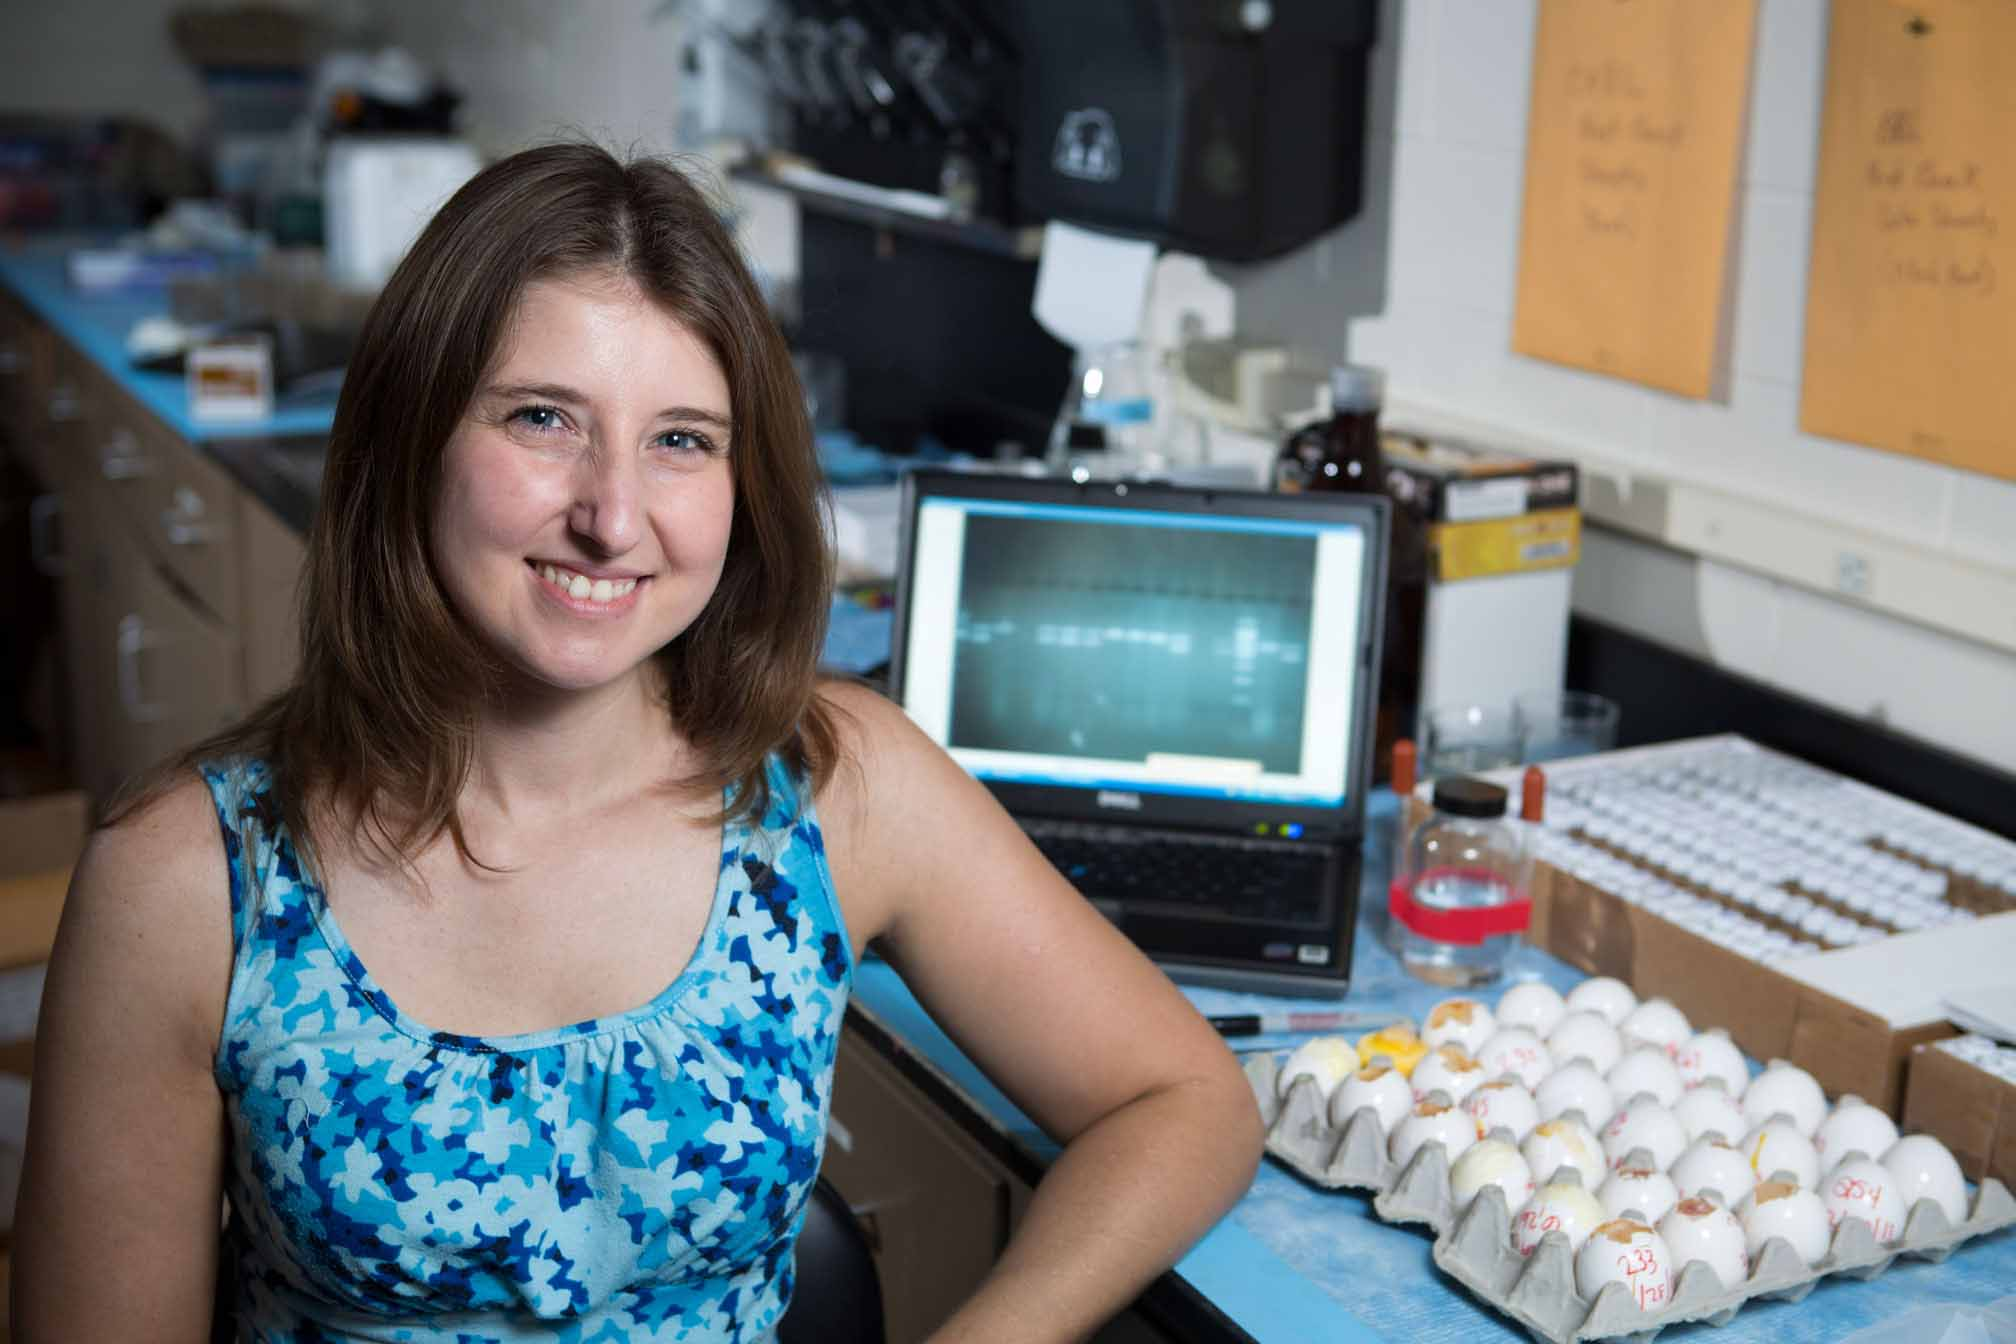 Kristen Navara, associate professor in the Department of Poultry Science, studies the ways that stress affects reproduction and growth in poultry and other organisms.